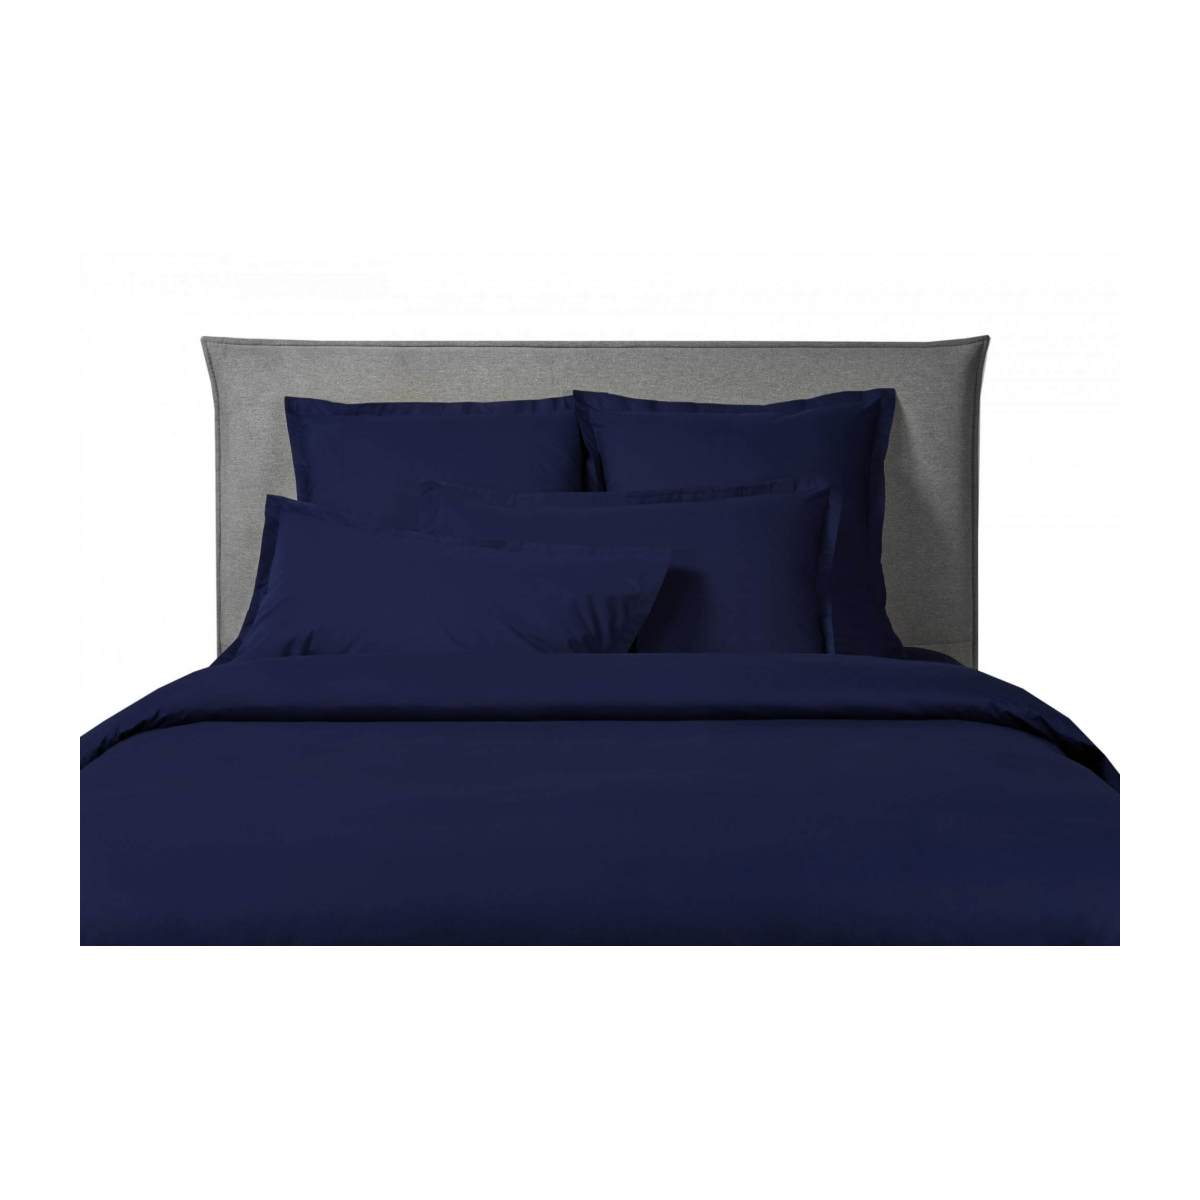 Duvet cover 140x200, dark blue n°1